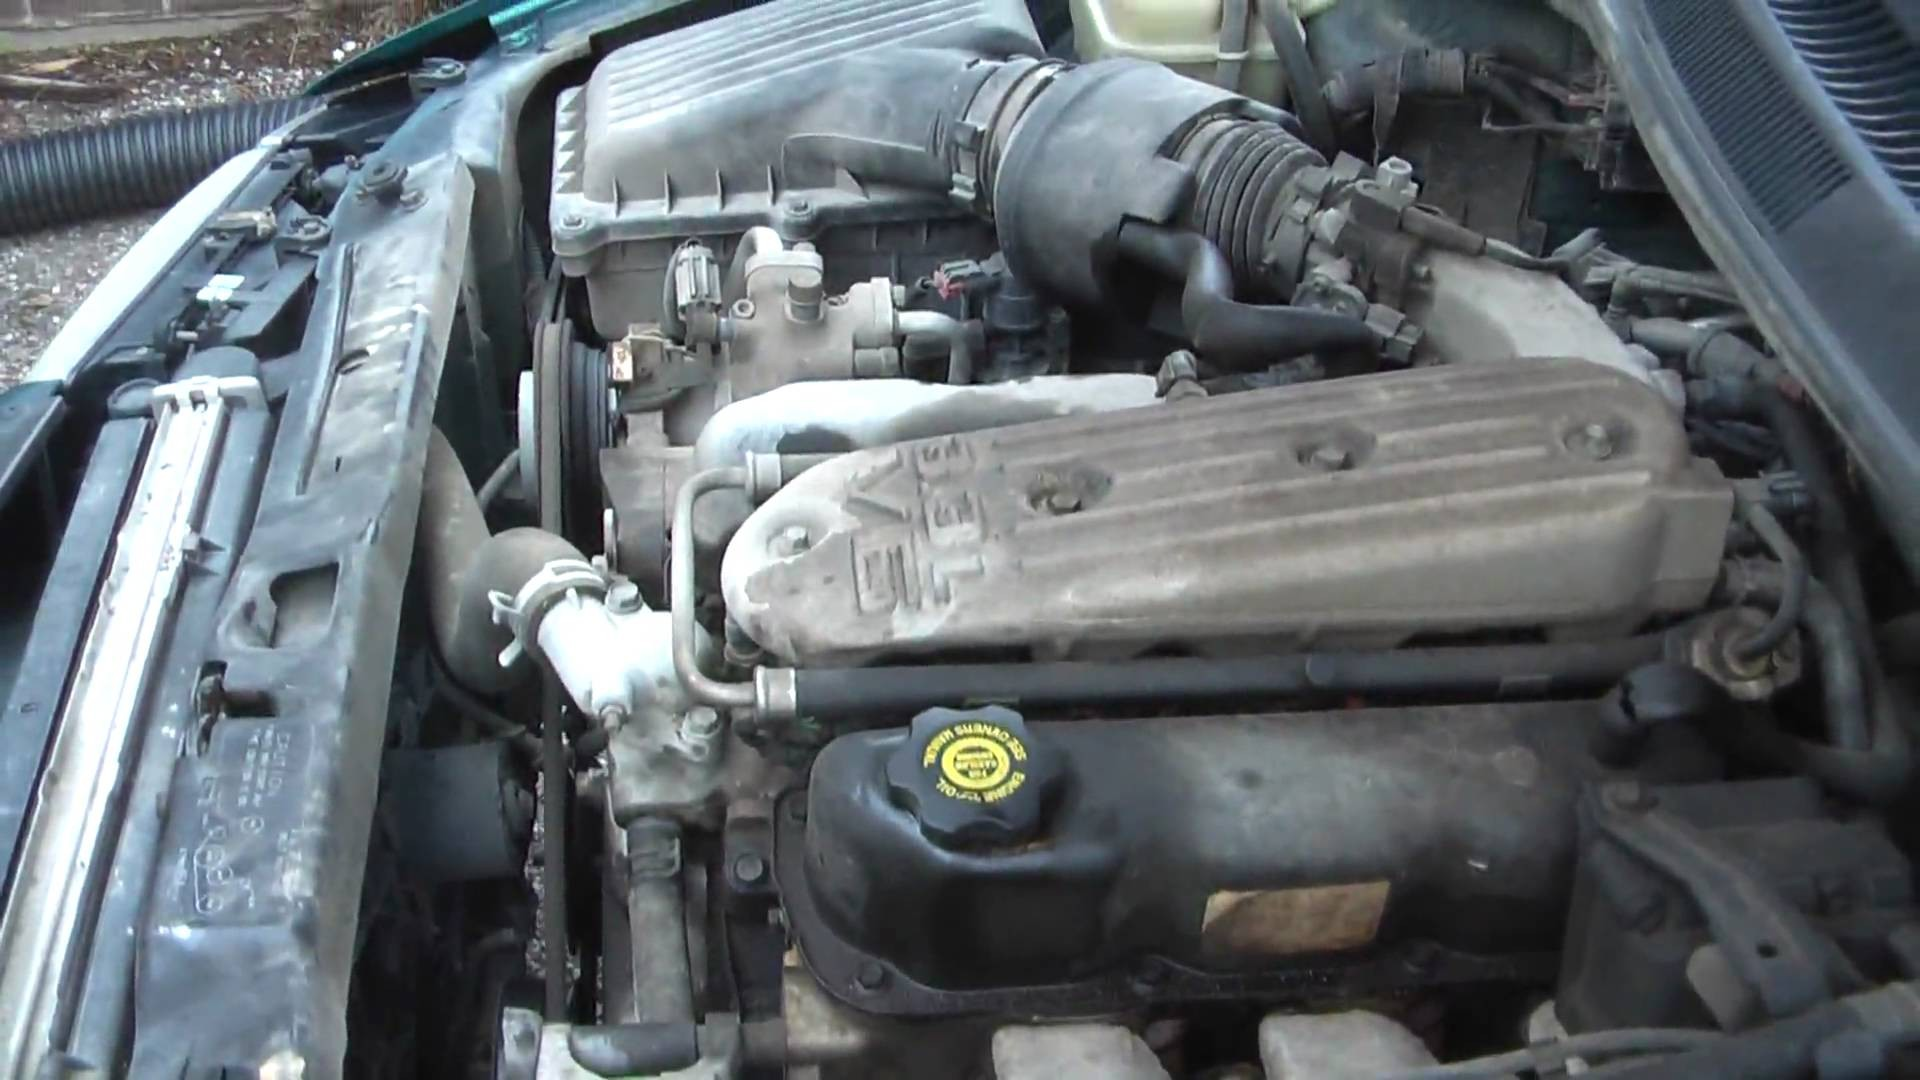 2000 Chrysler Concorde Engine Diagram My Wiring 1996 Of